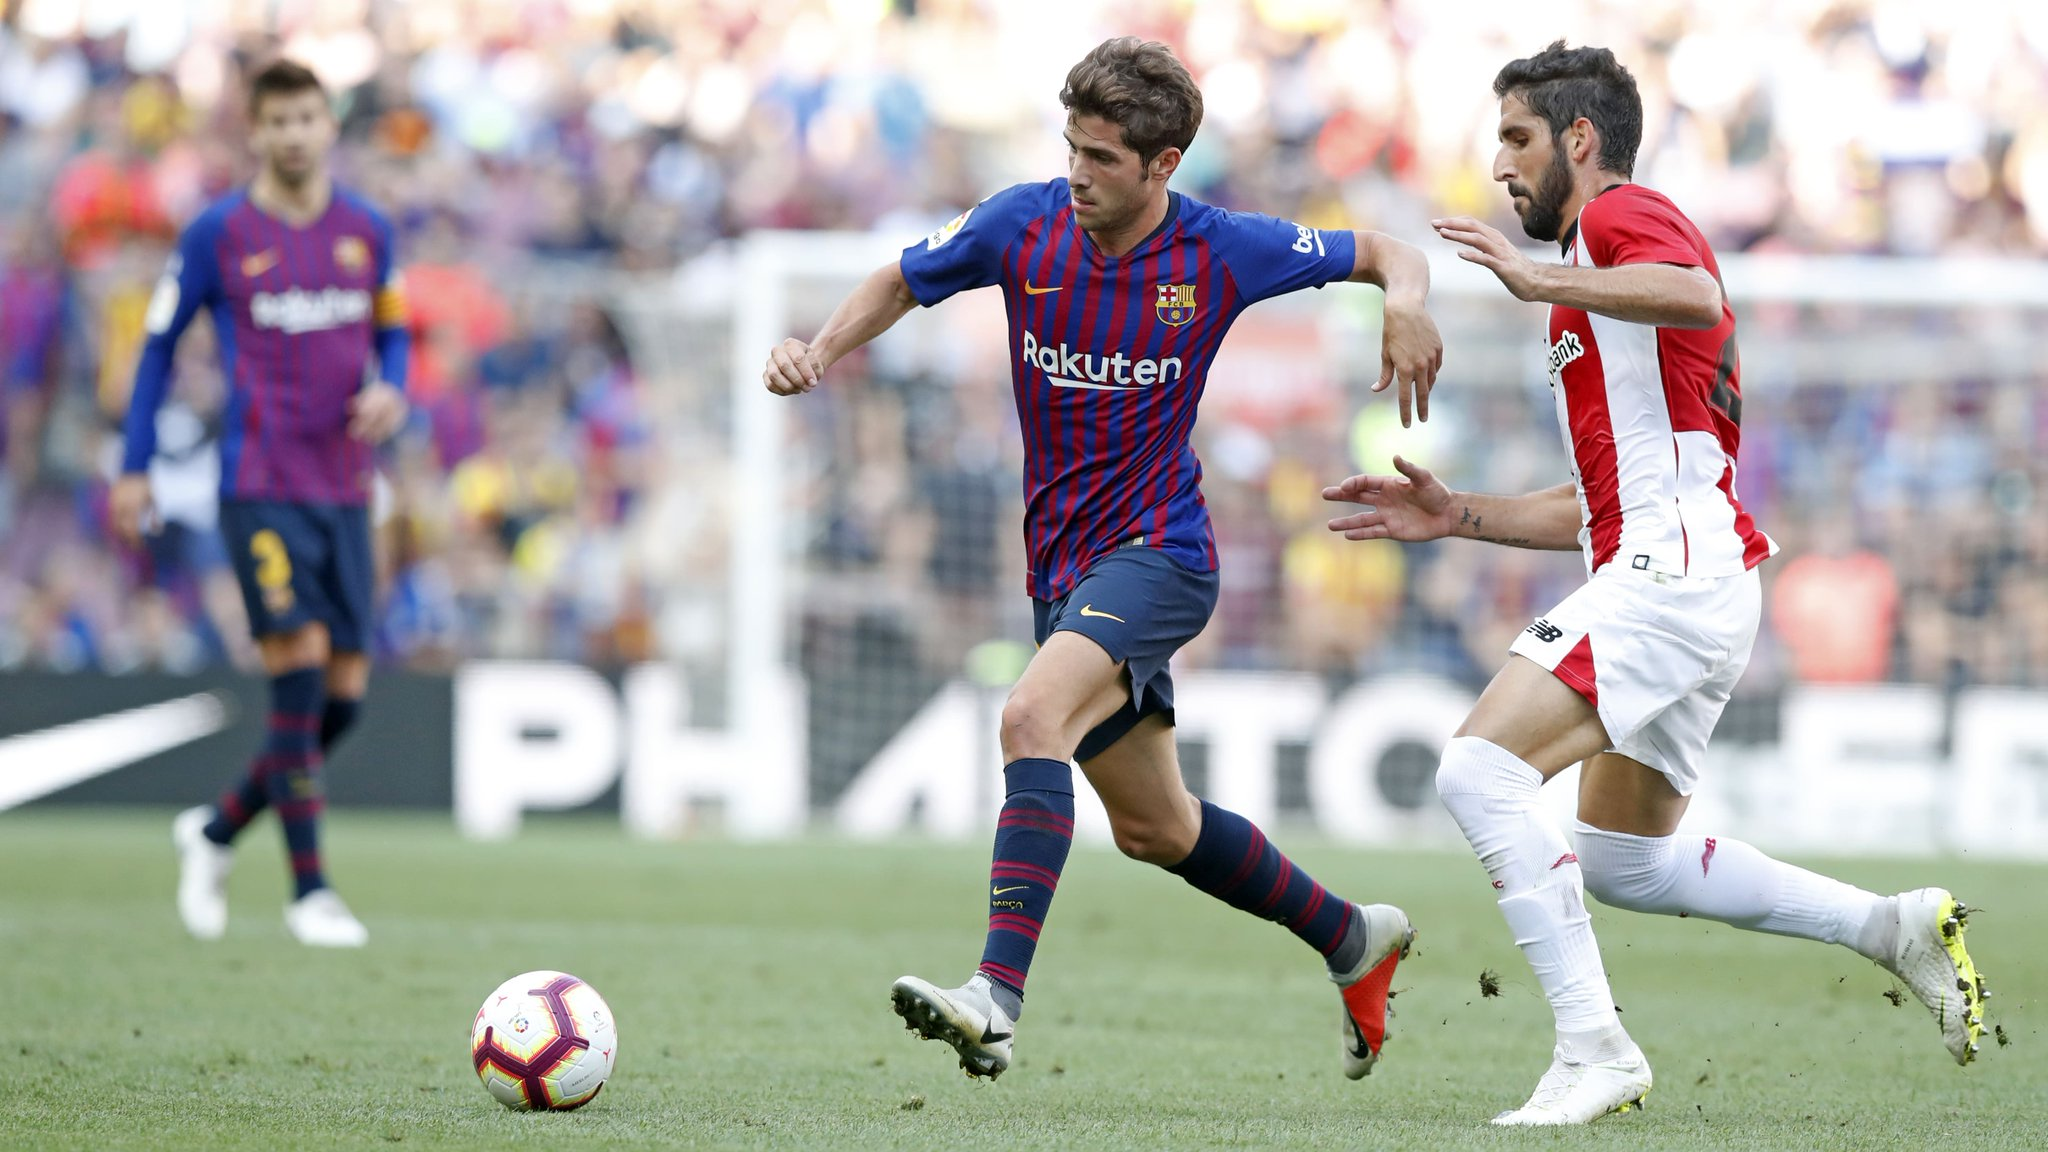 LaLiga: Barca Extend Winless Streak To 3 Games After Home Draw With Athletic Bilbao